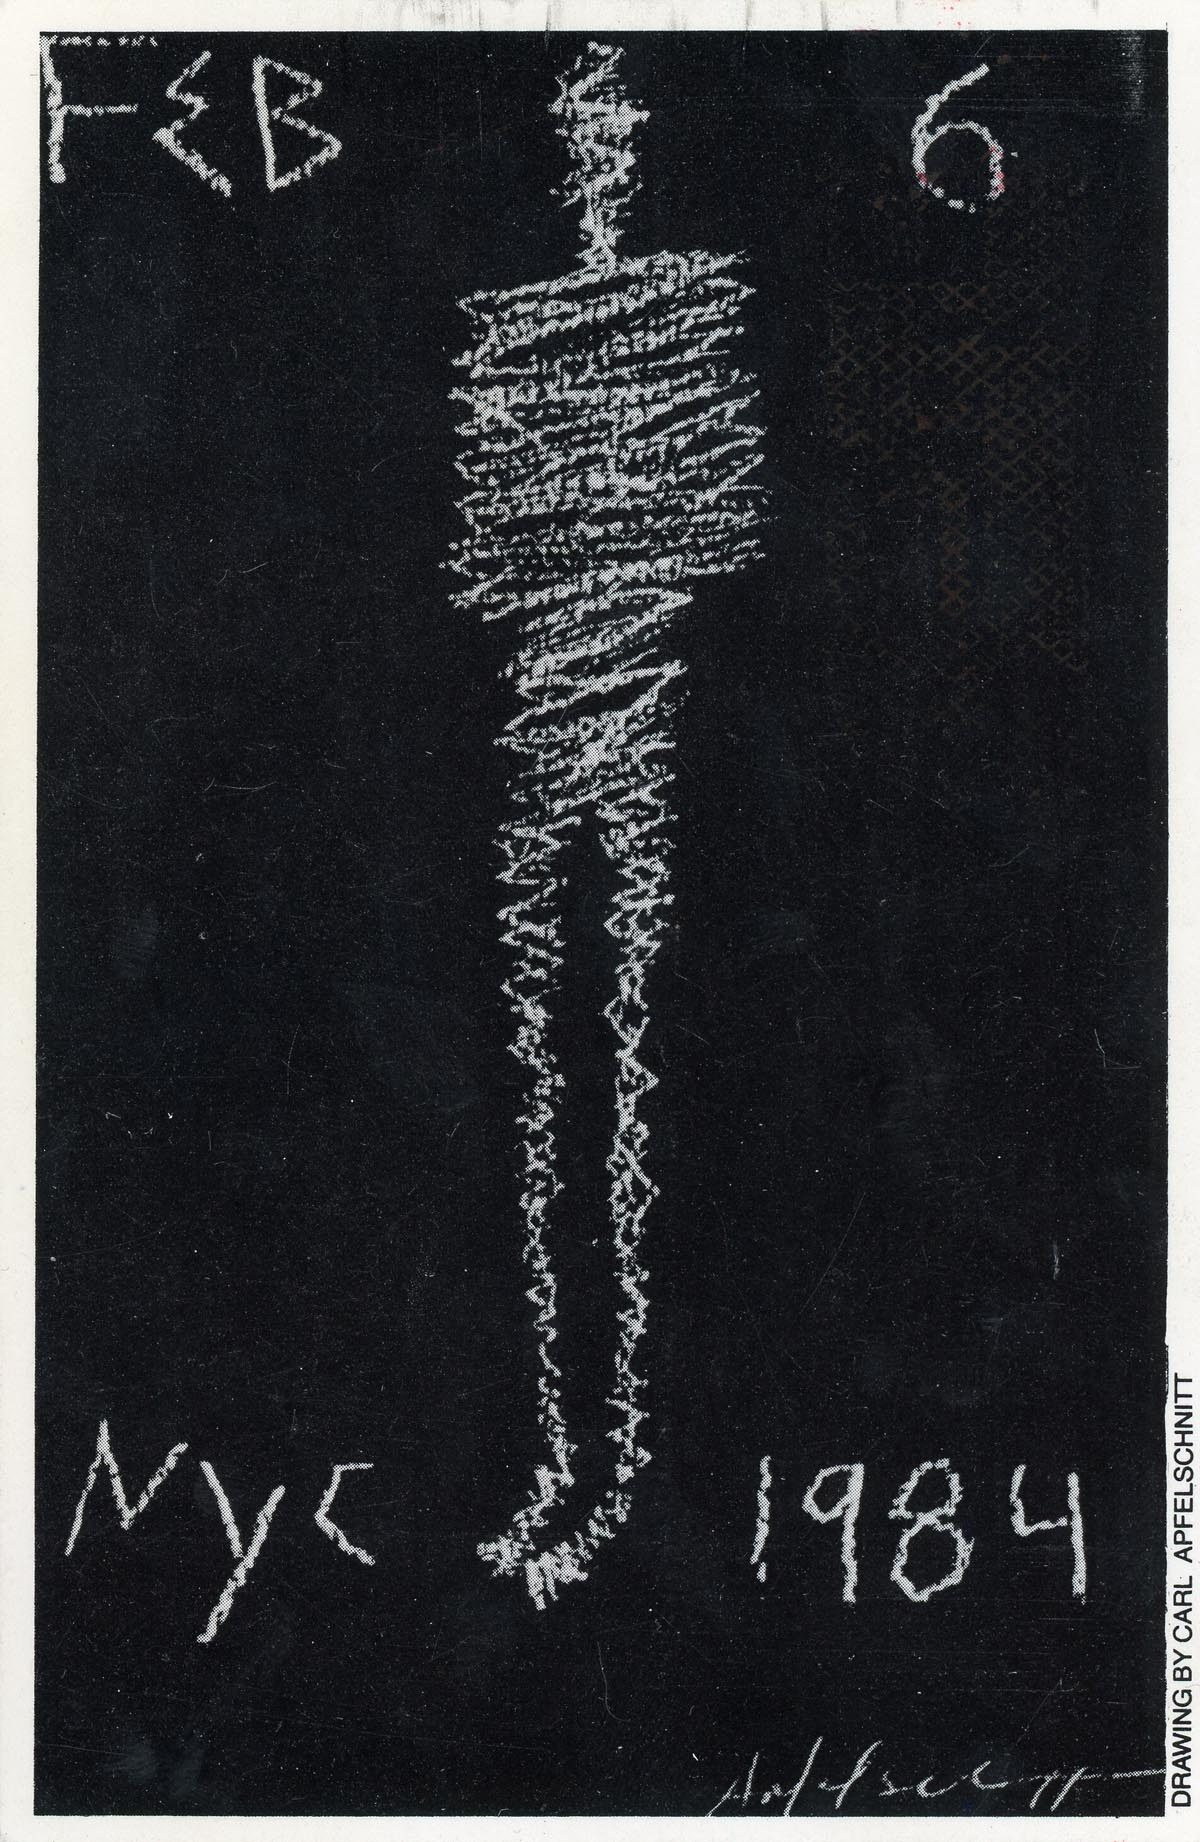 Limelight, Carl Apfelschnitt, 70th Birthday of William S. Burroughs, Card, 1984